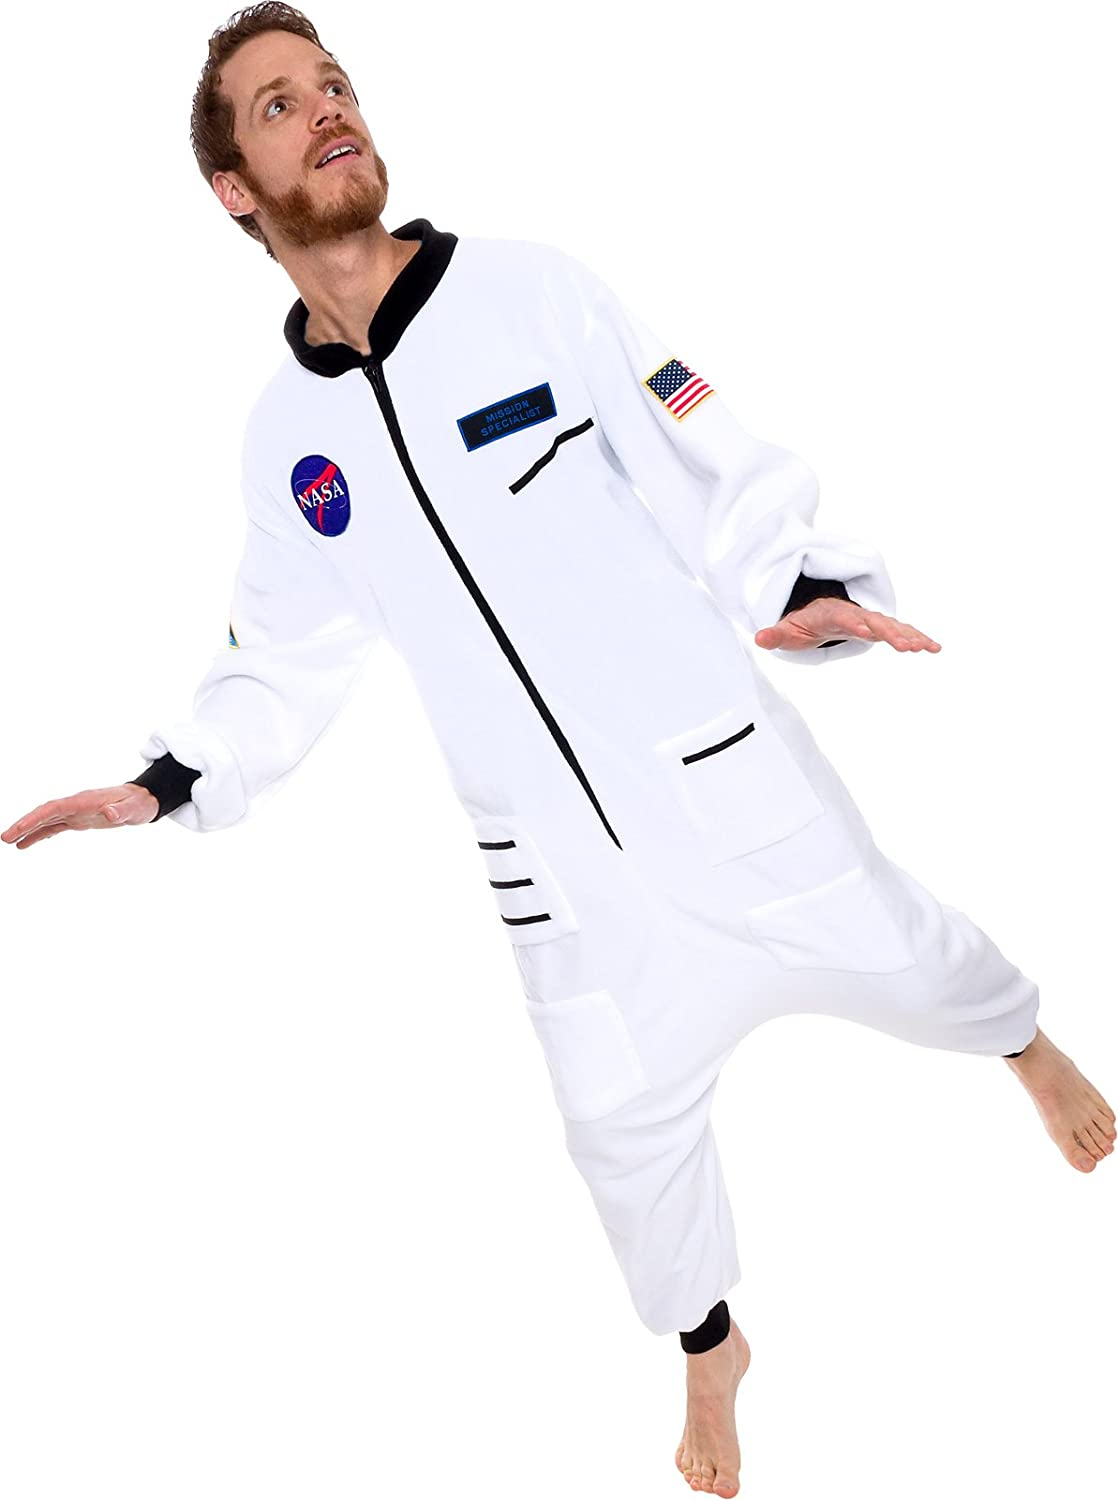 Astronomy Astronaut Sci Fi Solar System Space Onesie Space Onesies for Babies I Need My Space Onesie Astronomy UFO Spaceship